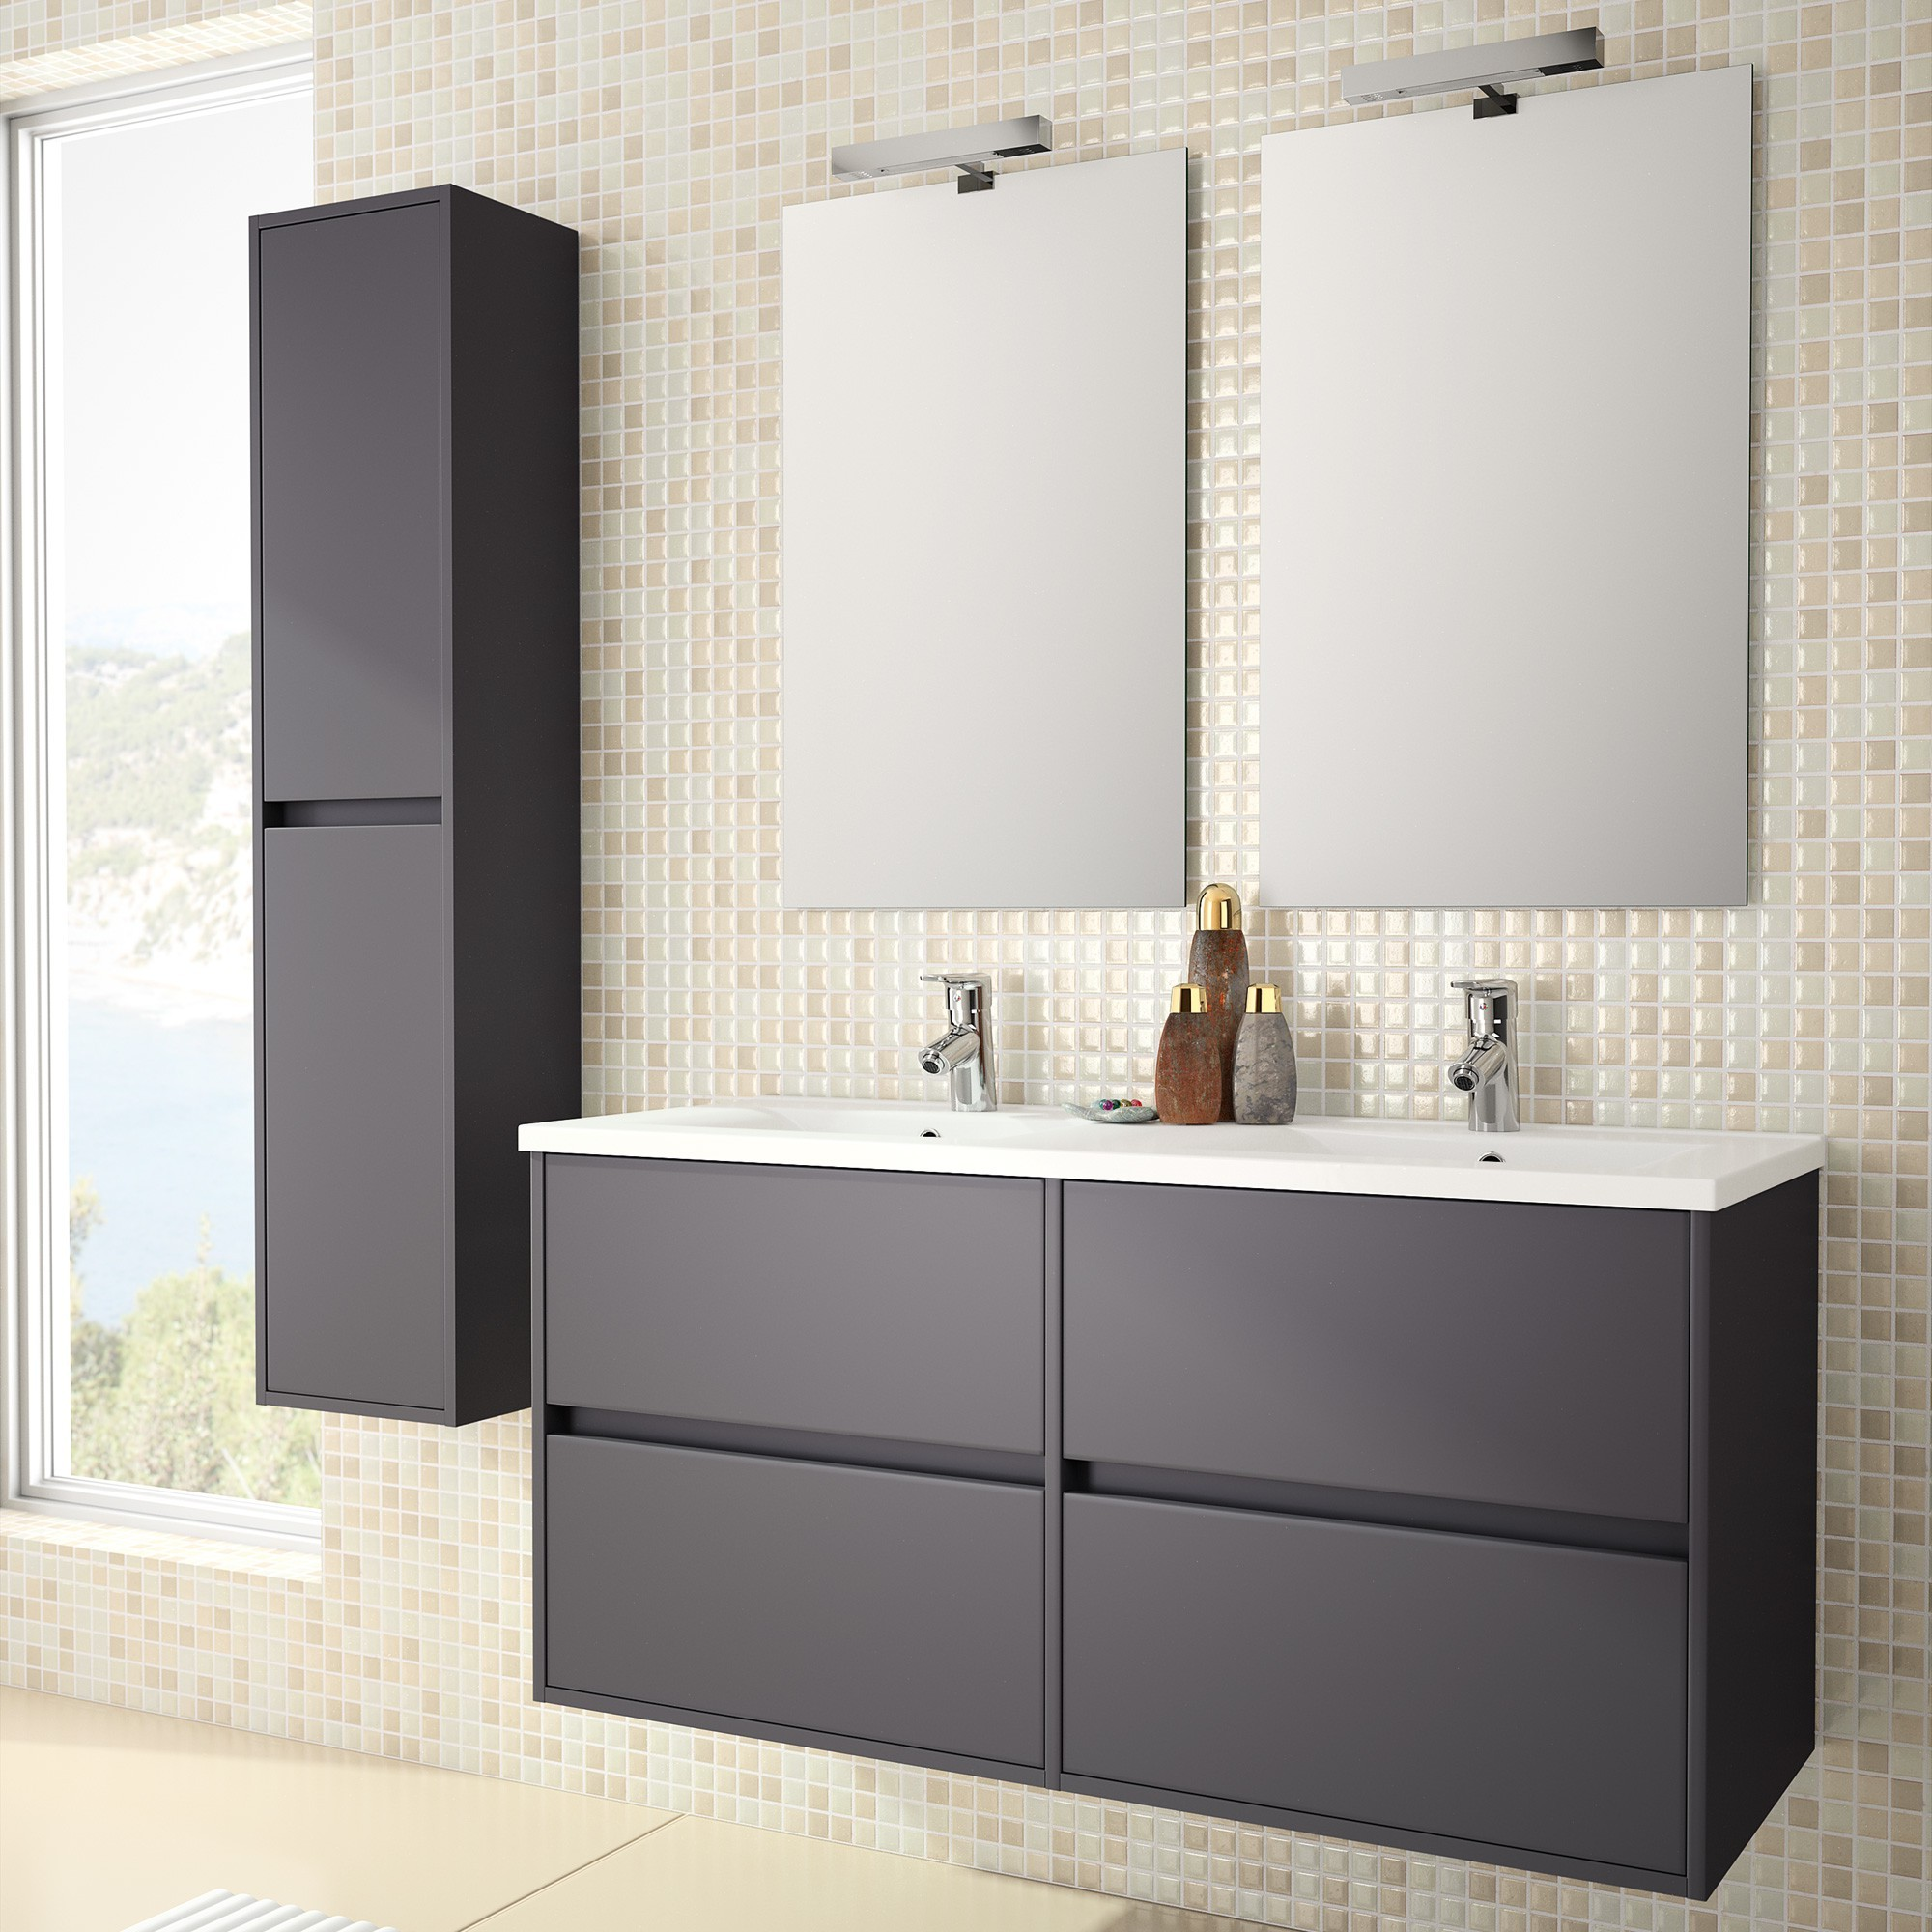 le bon coin meuble salle de bain lyon salle de bain id es de d coration de maison qv9lporno3. Black Bedroom Furniture Sets. Home Design Ideas